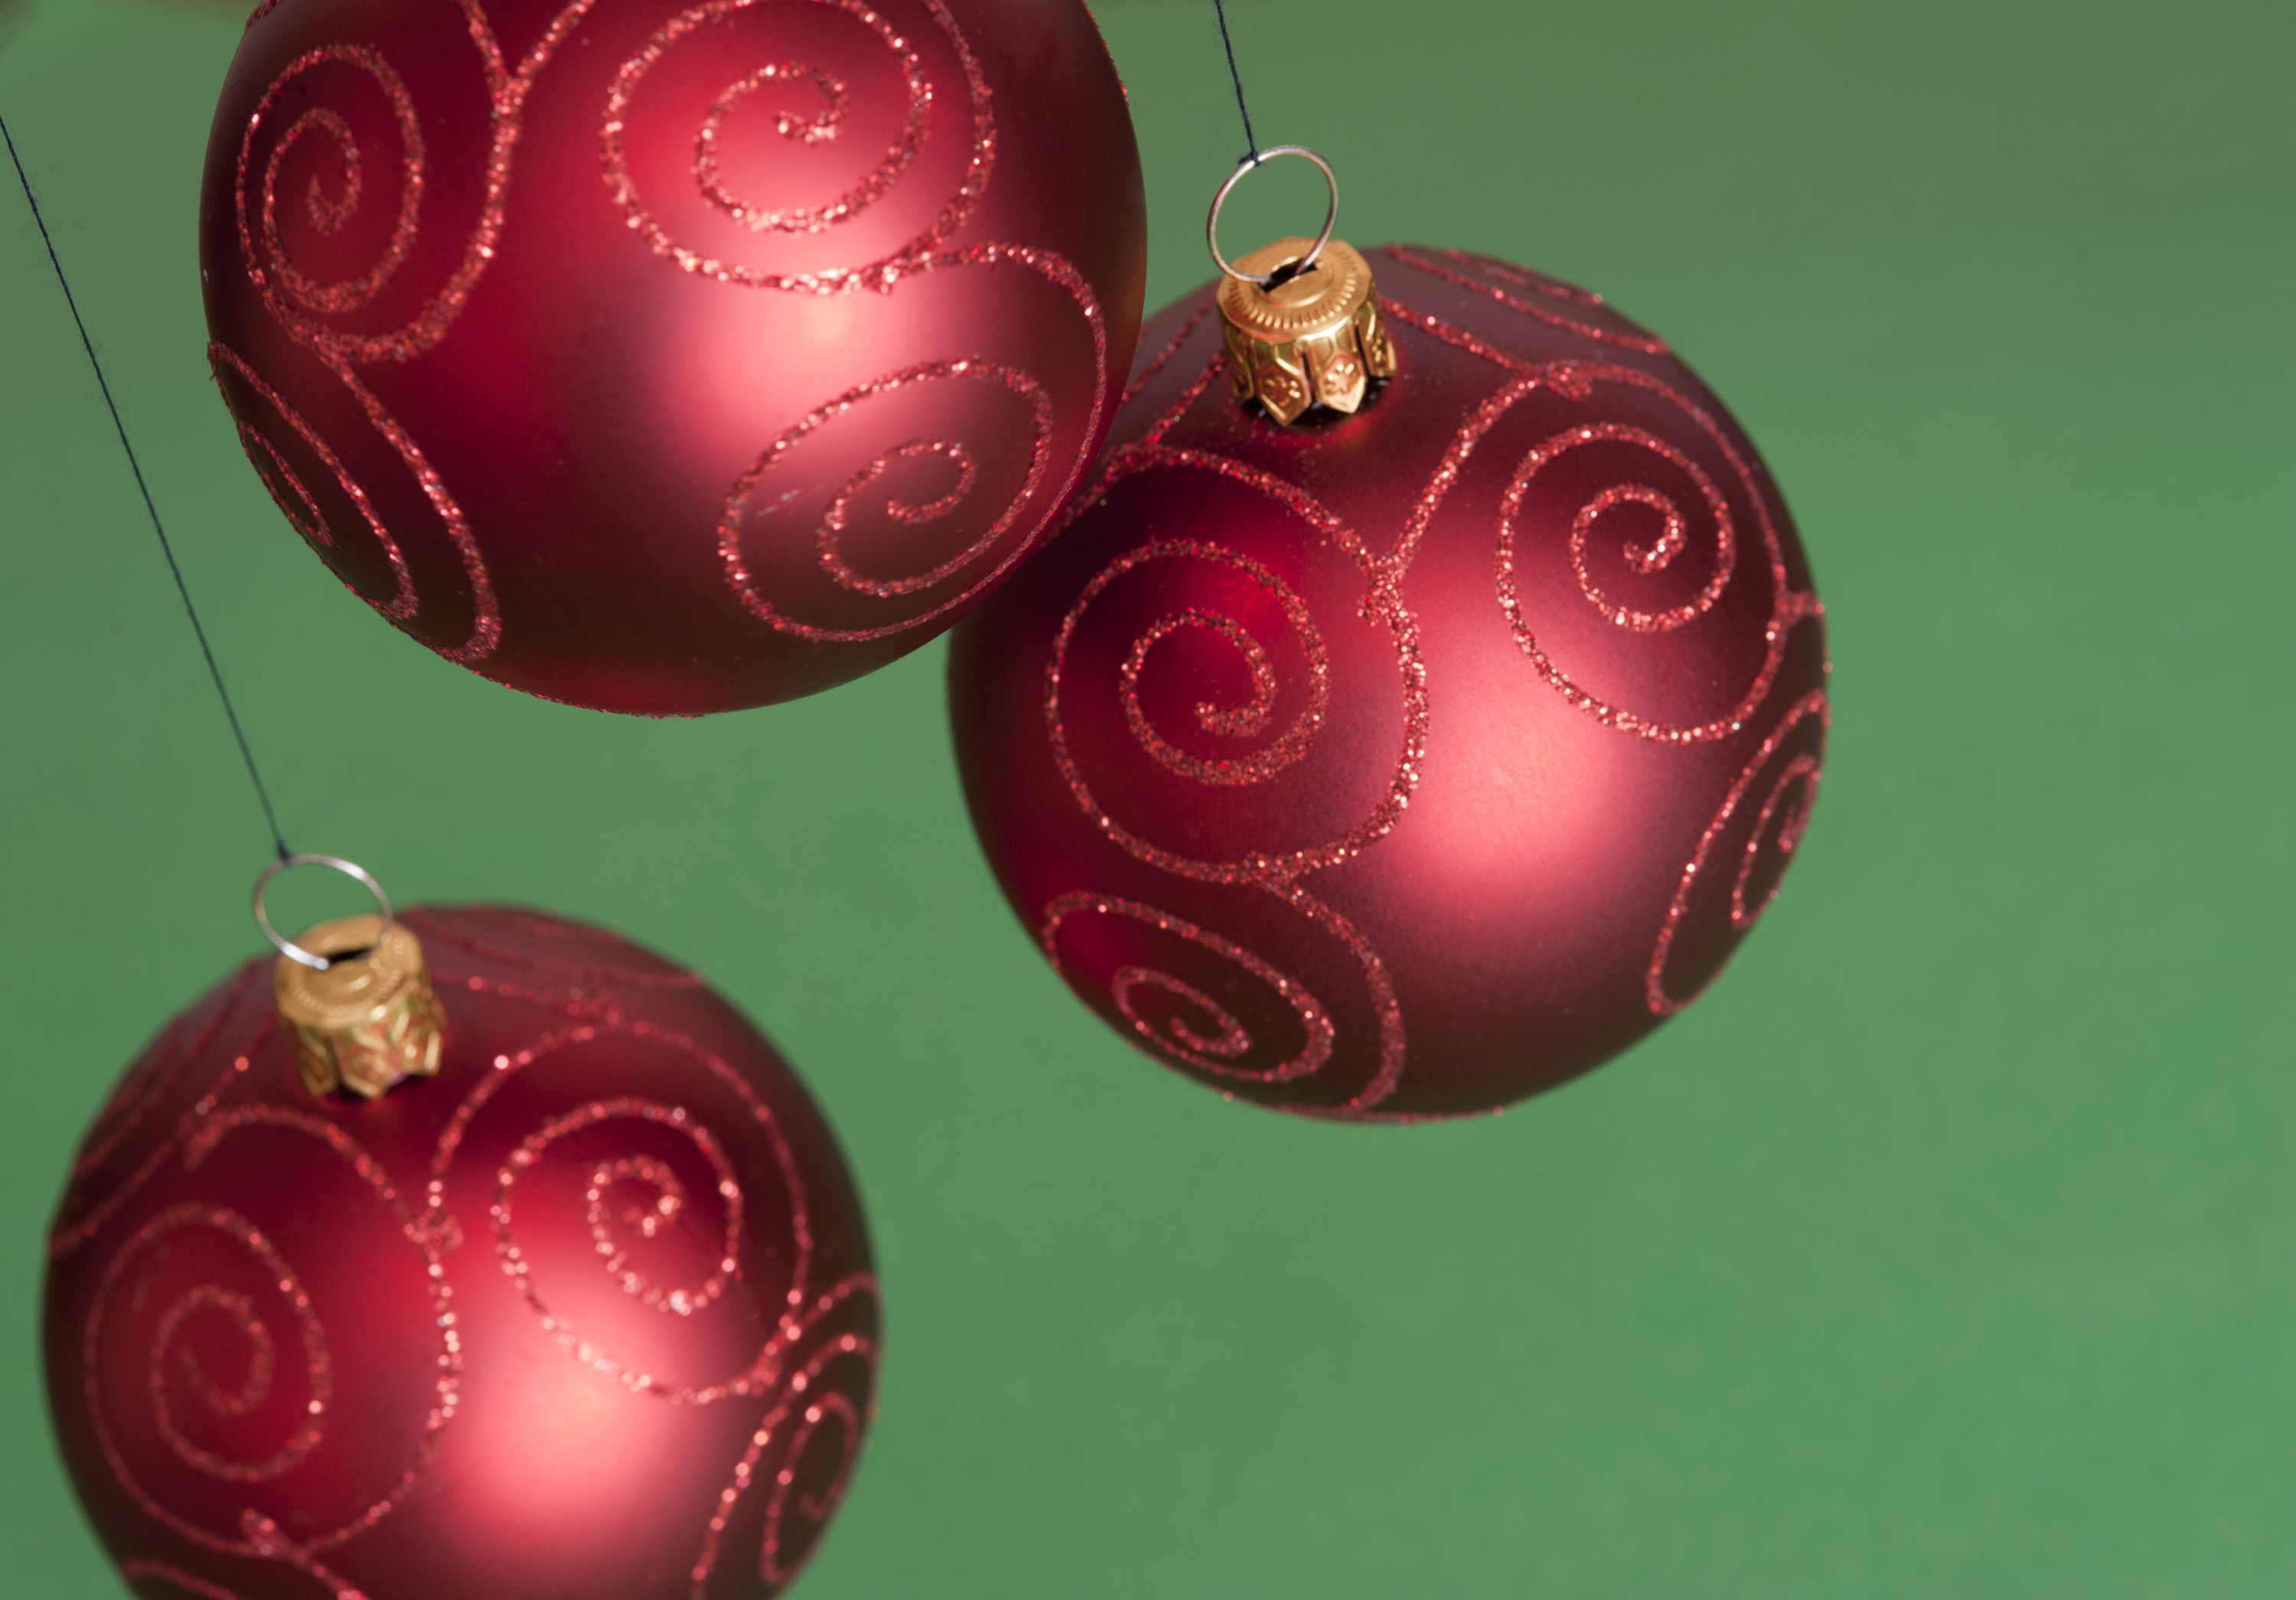 Close-up of three red Christmas balls hanging against of green background